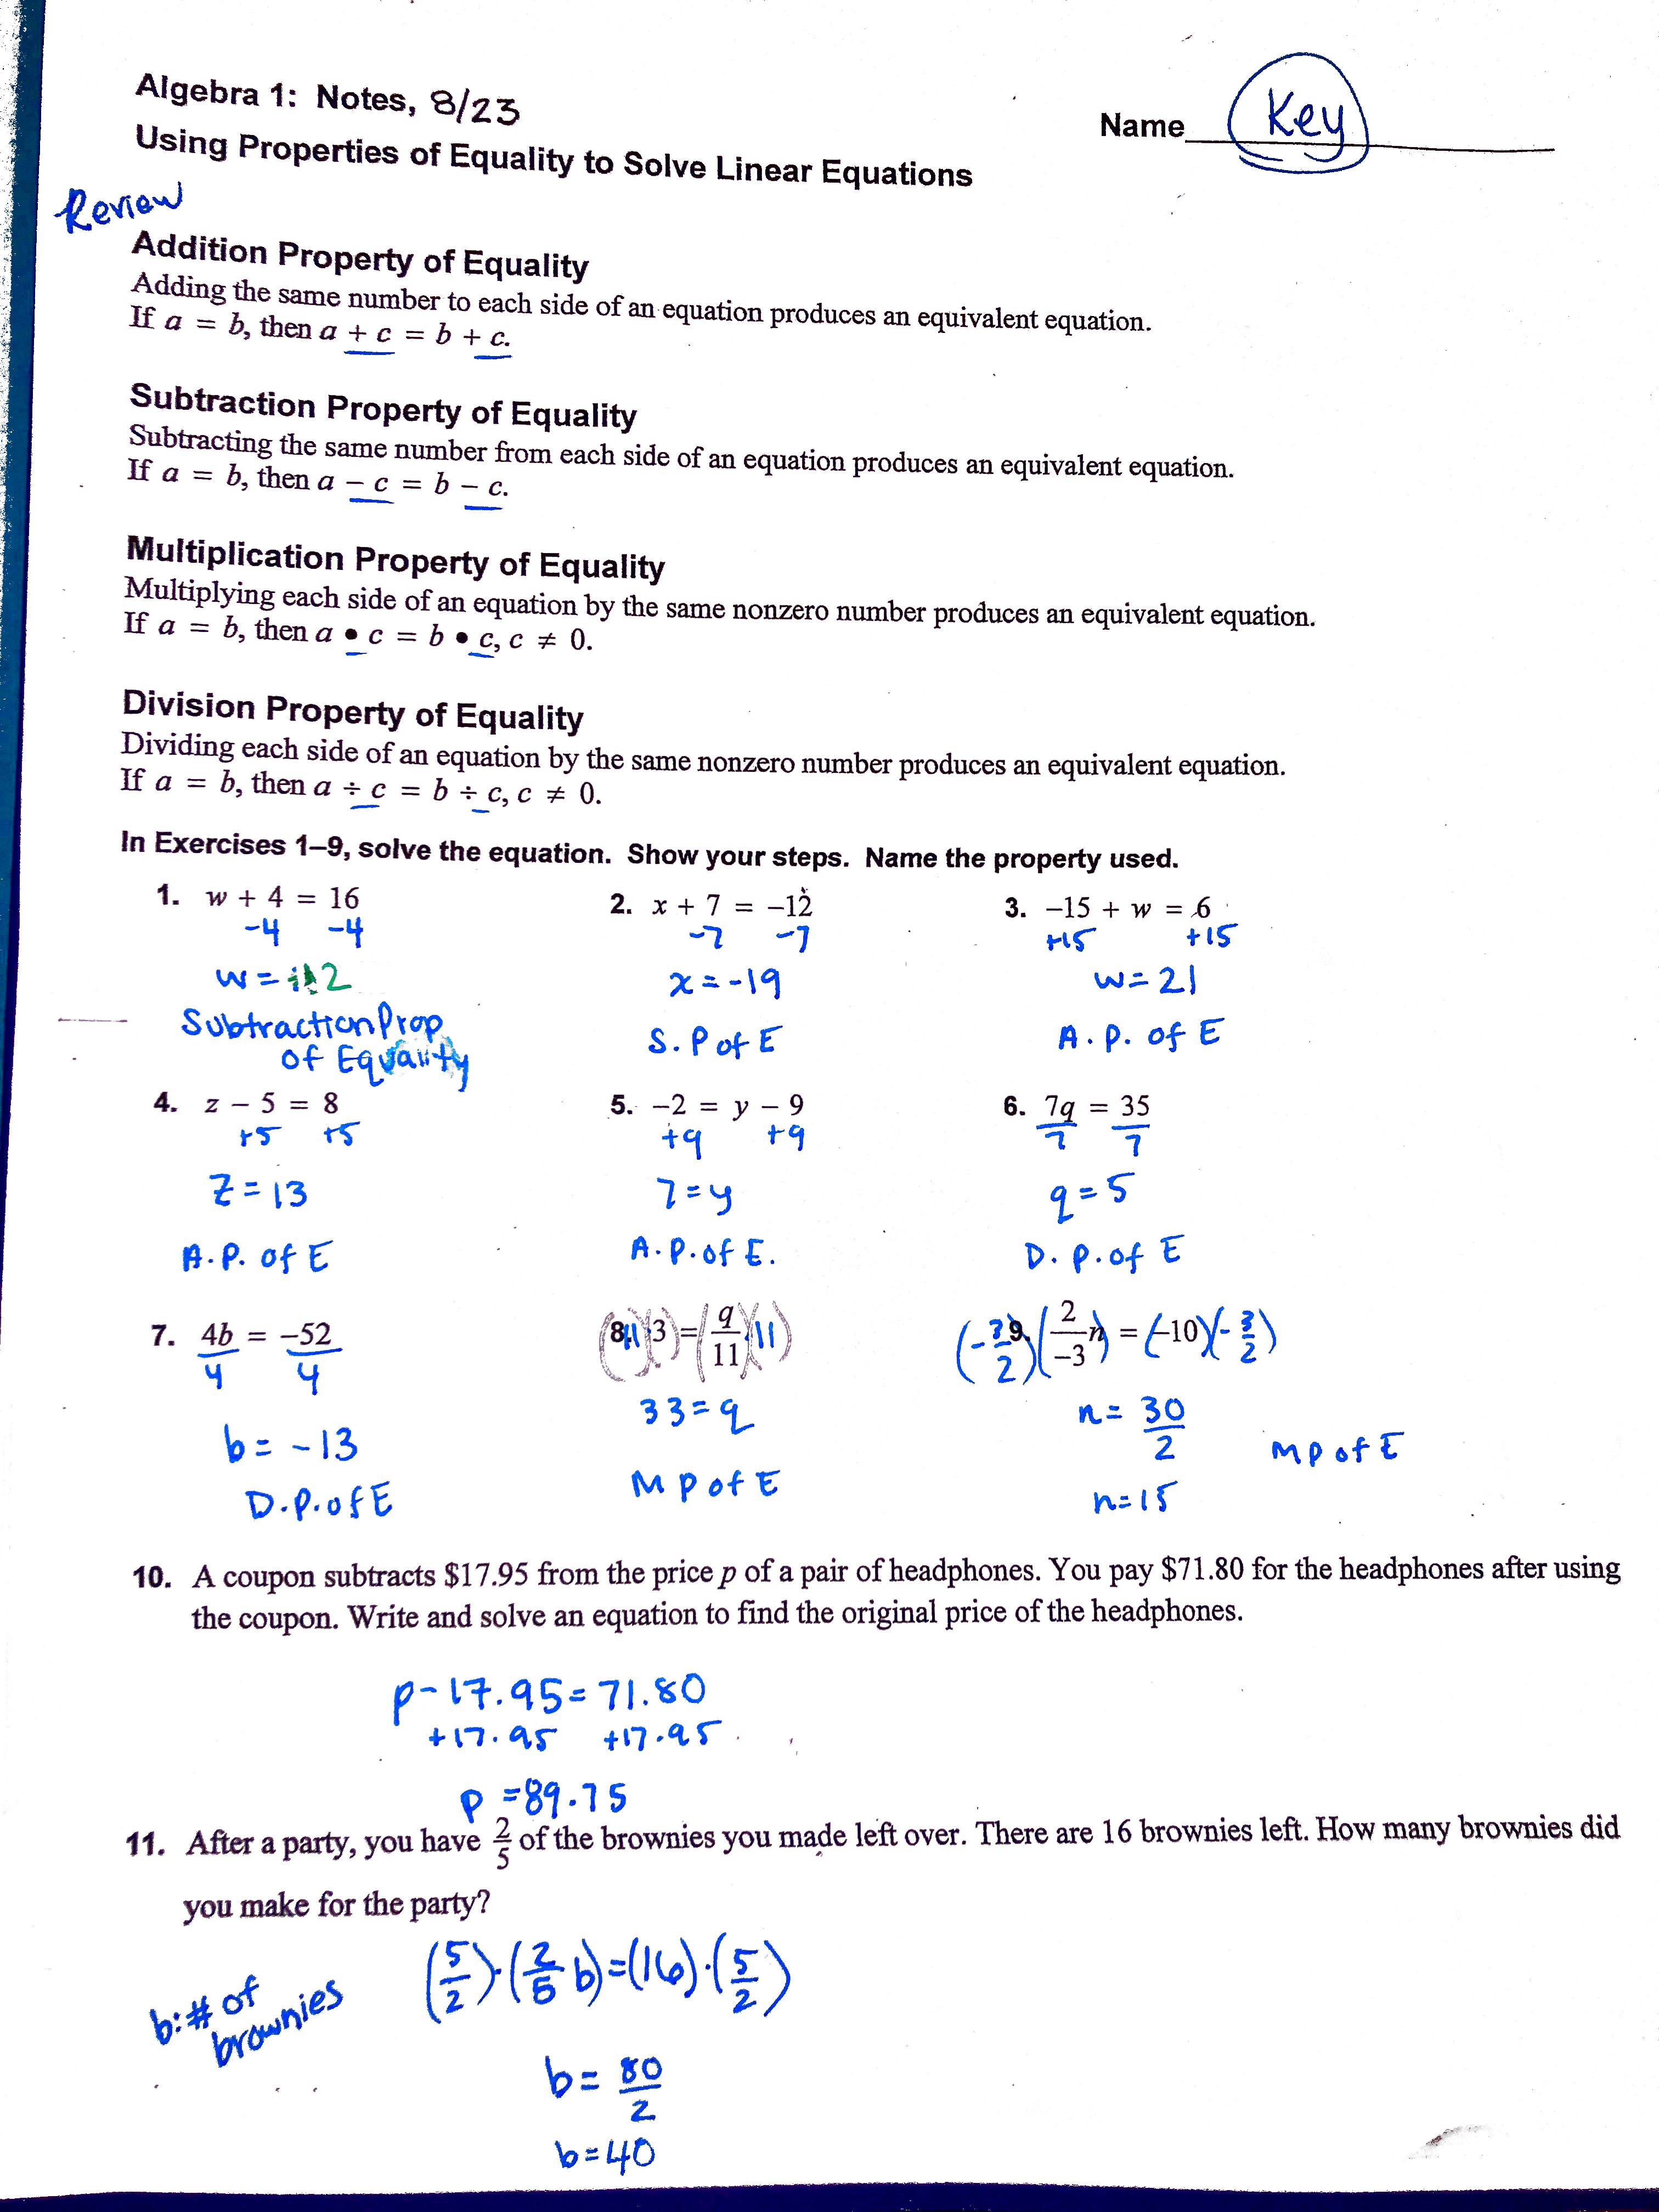 Linear Equations Review Worksheet Algebra 1 Answers